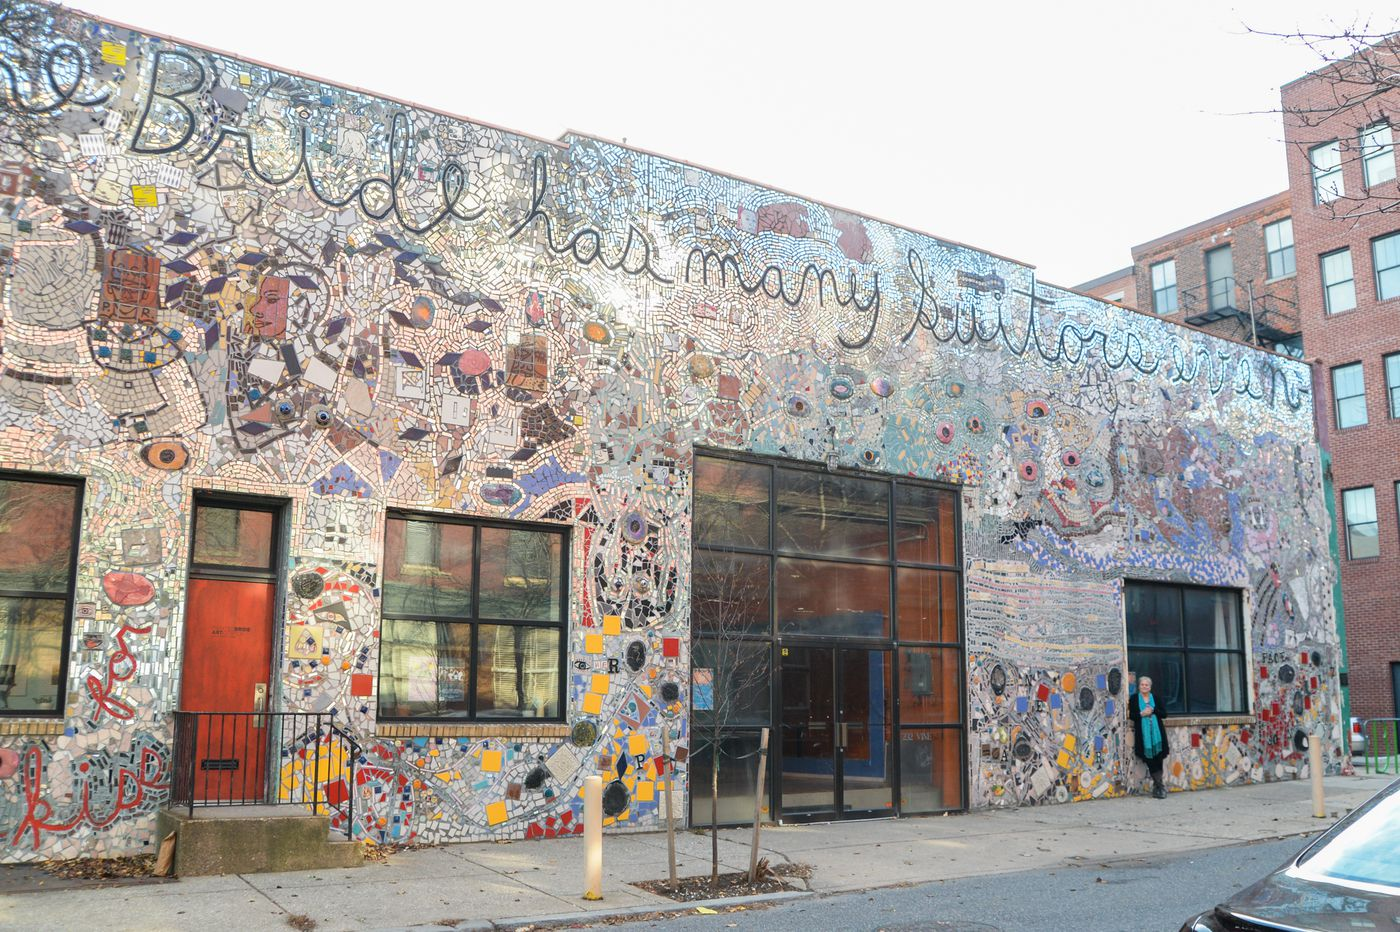 Painted Bride sale may proceed, judges say, but Isaiah Zagar murals may not be doomed